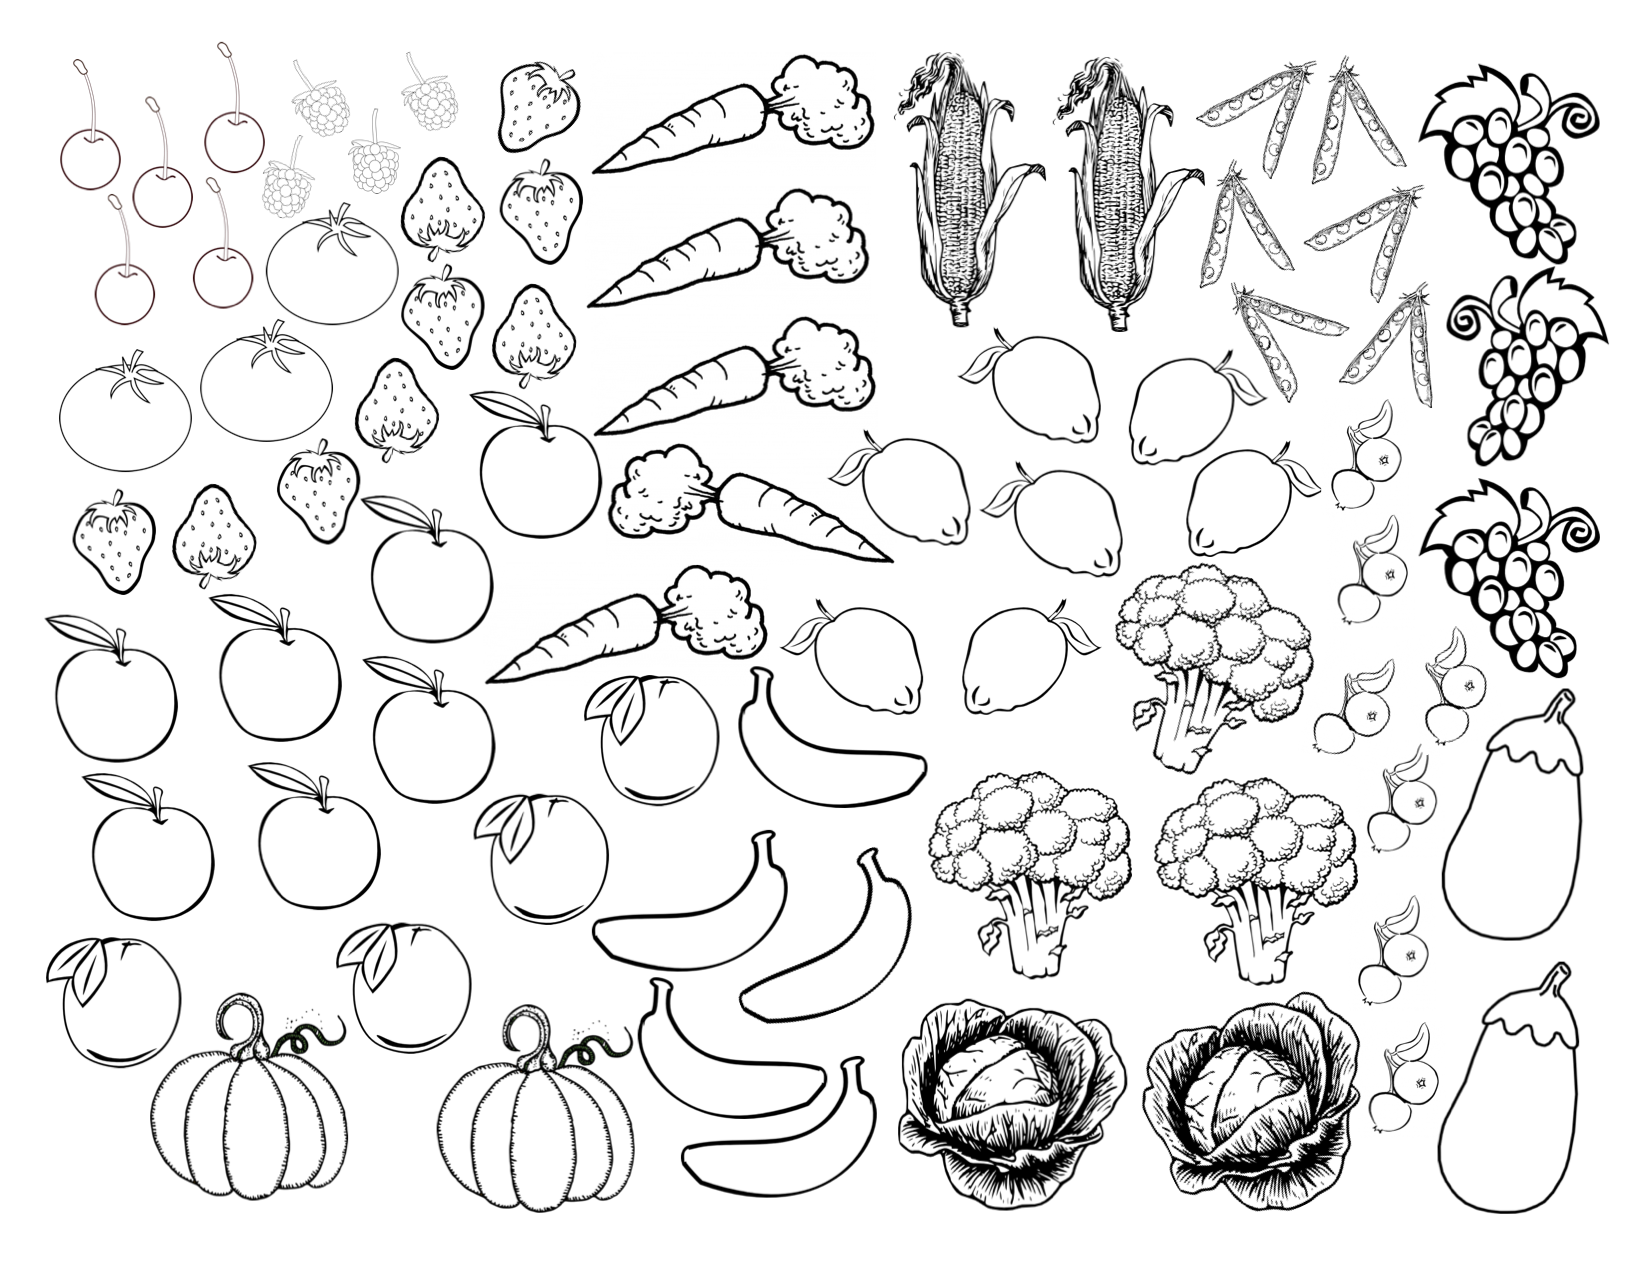 coloring fruits and vegetables images fruits and vegetables coloring pages print  coloring home and coloring vegetables fruits images